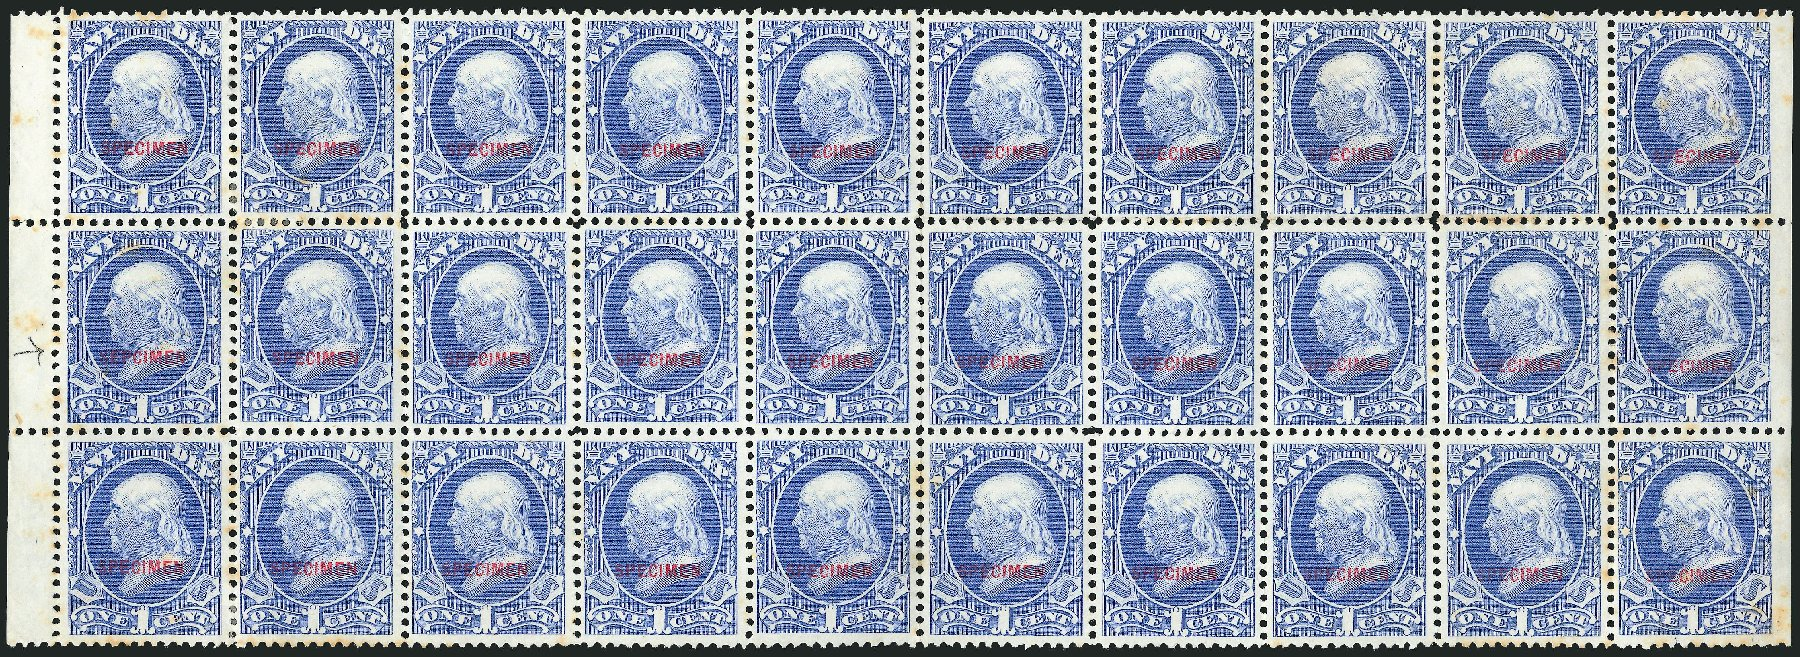 US Stamps Price Scott Catalogue # O35: 1873 1c Navy Official. Robert Siegel Auction Galleries, Mar 2015, Sale 1095, Lot 583